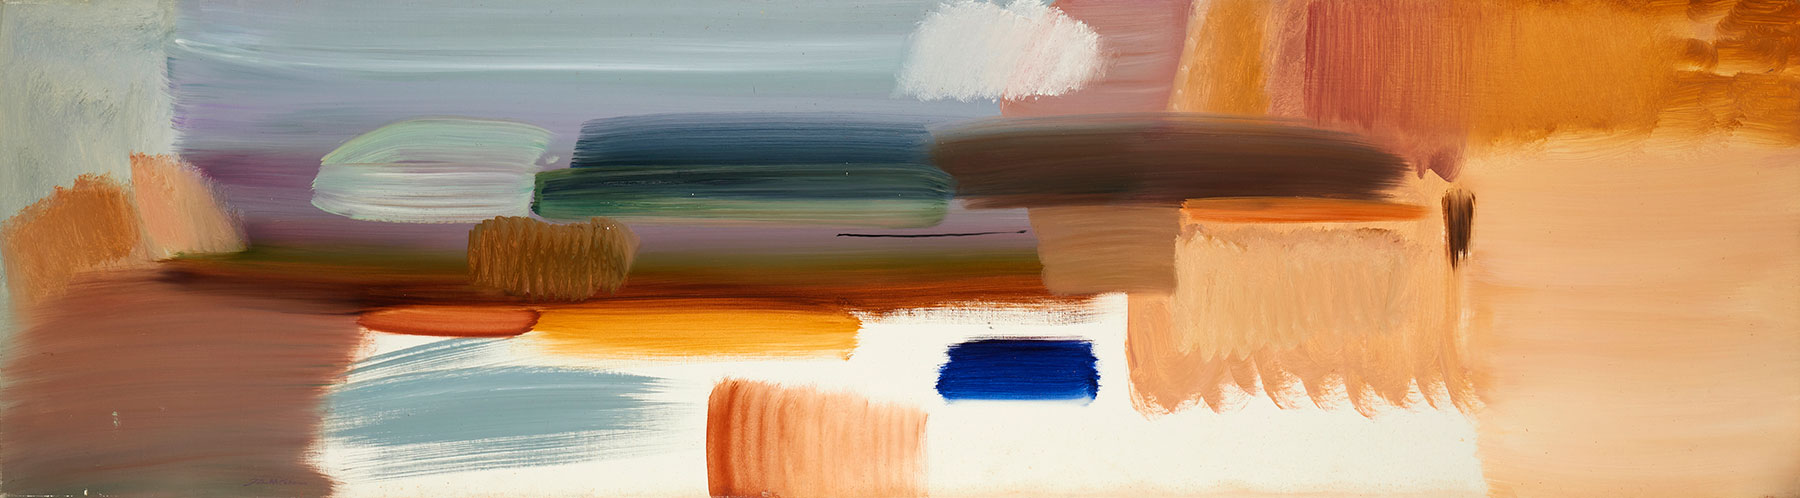 Autumn Spaces, 1977, 50.5 x 183 cm, oil on canvas